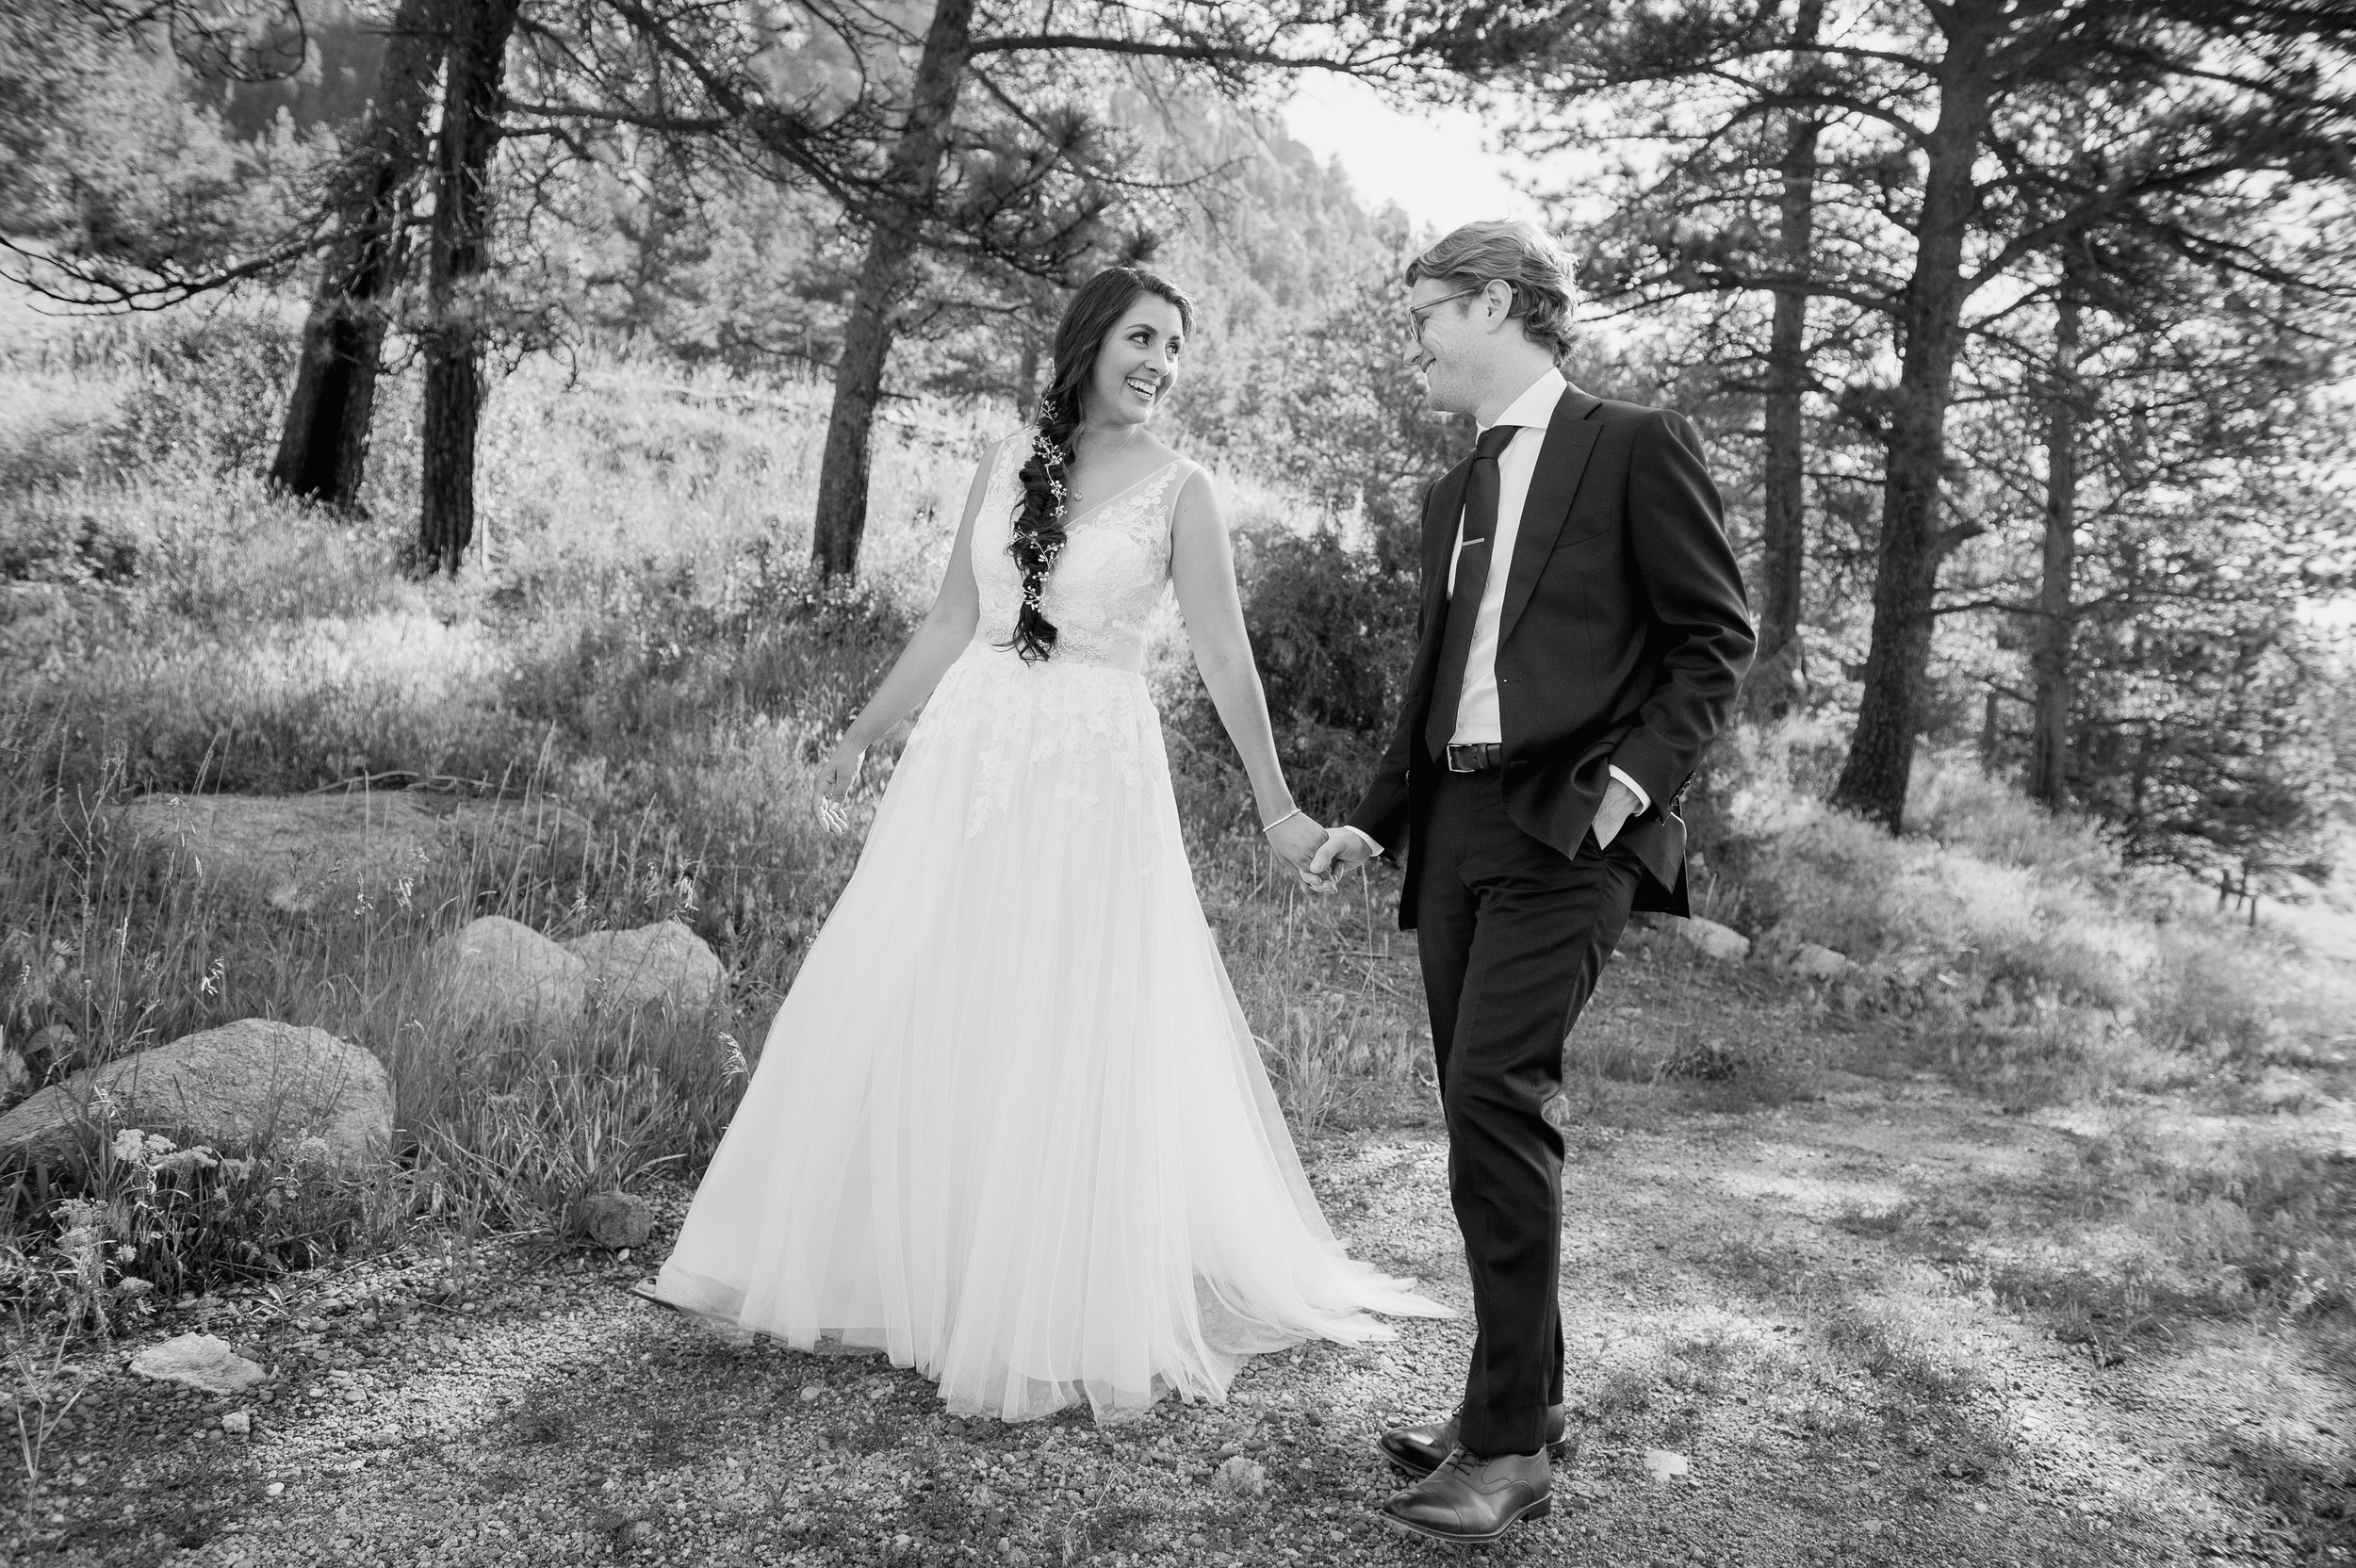 We are a wife and husband team based in Denver, Colorado. We have over a decade of experience in photography and business. Let us use that experience to help you. -